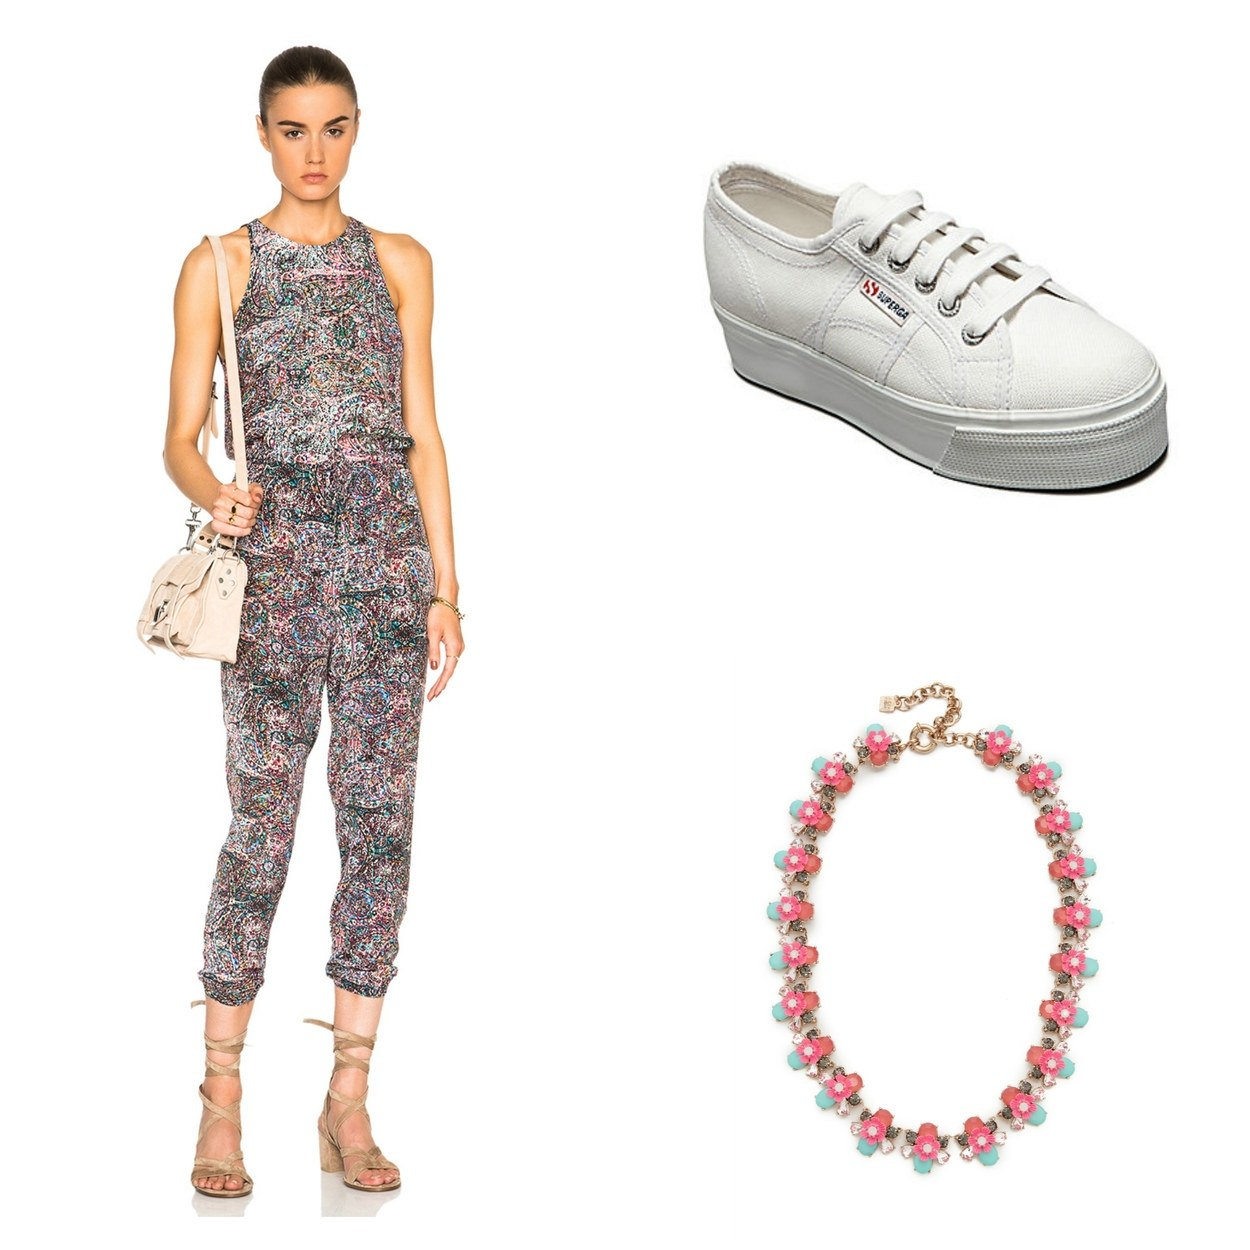 white-jumpsuit-necklace-white-shoe-sneakers-blue-light-jumpsuit-spring-summer-casualfriday-work.jpg